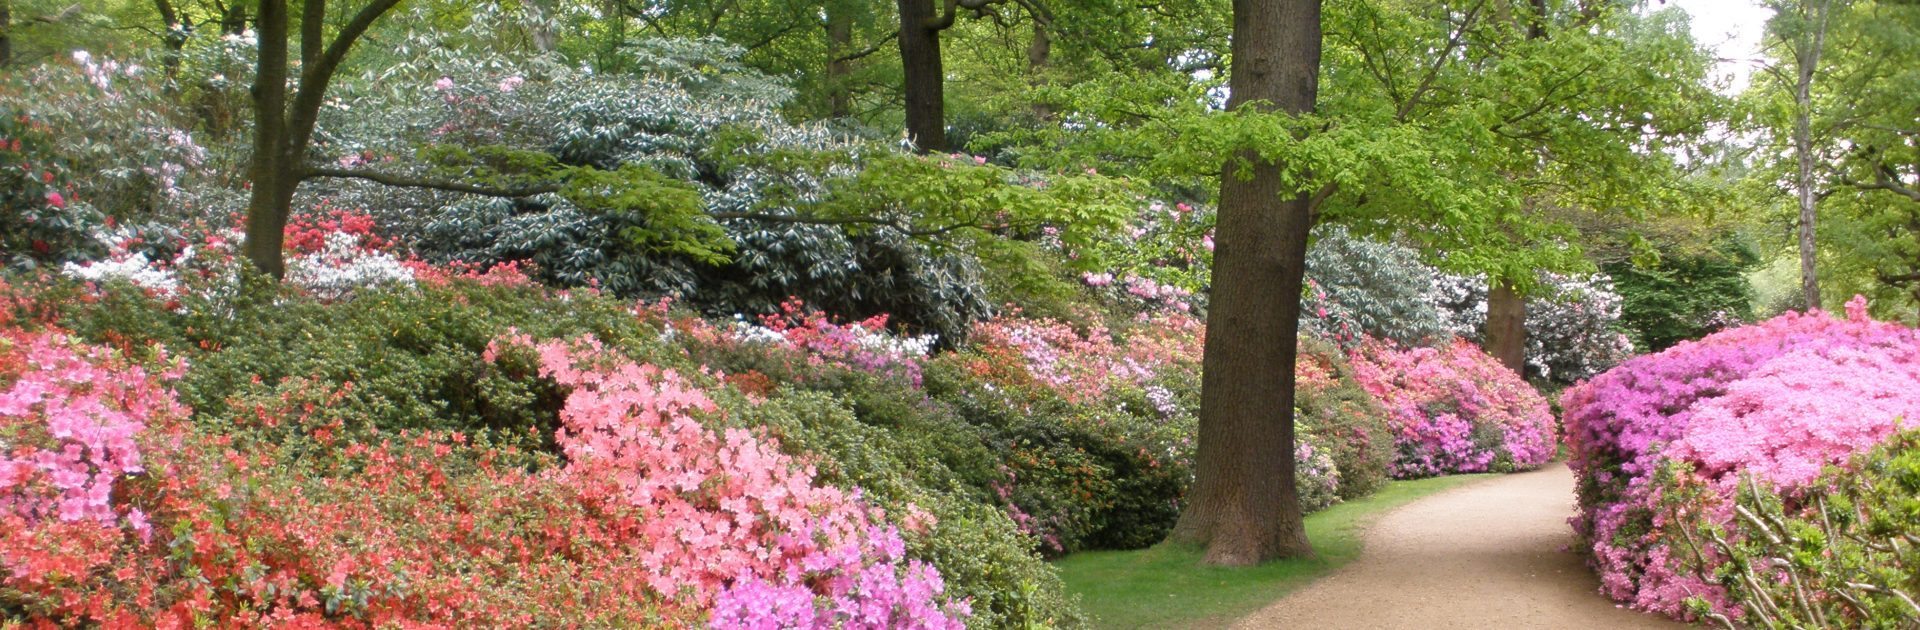 One of the widest ranges of Rhododendrons and Azaleas in the World